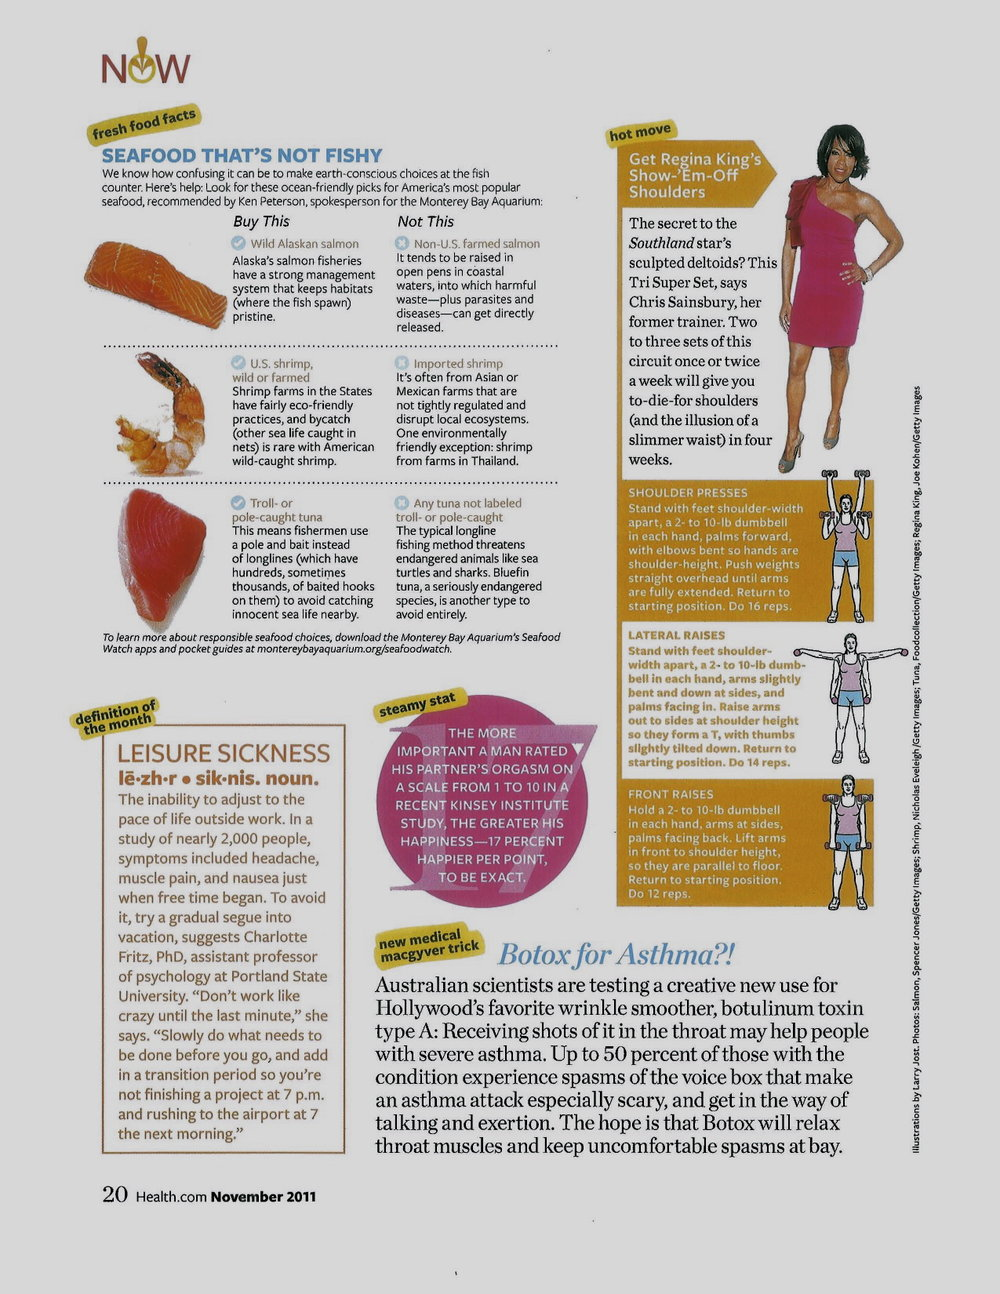 Health Mag Page.jpg